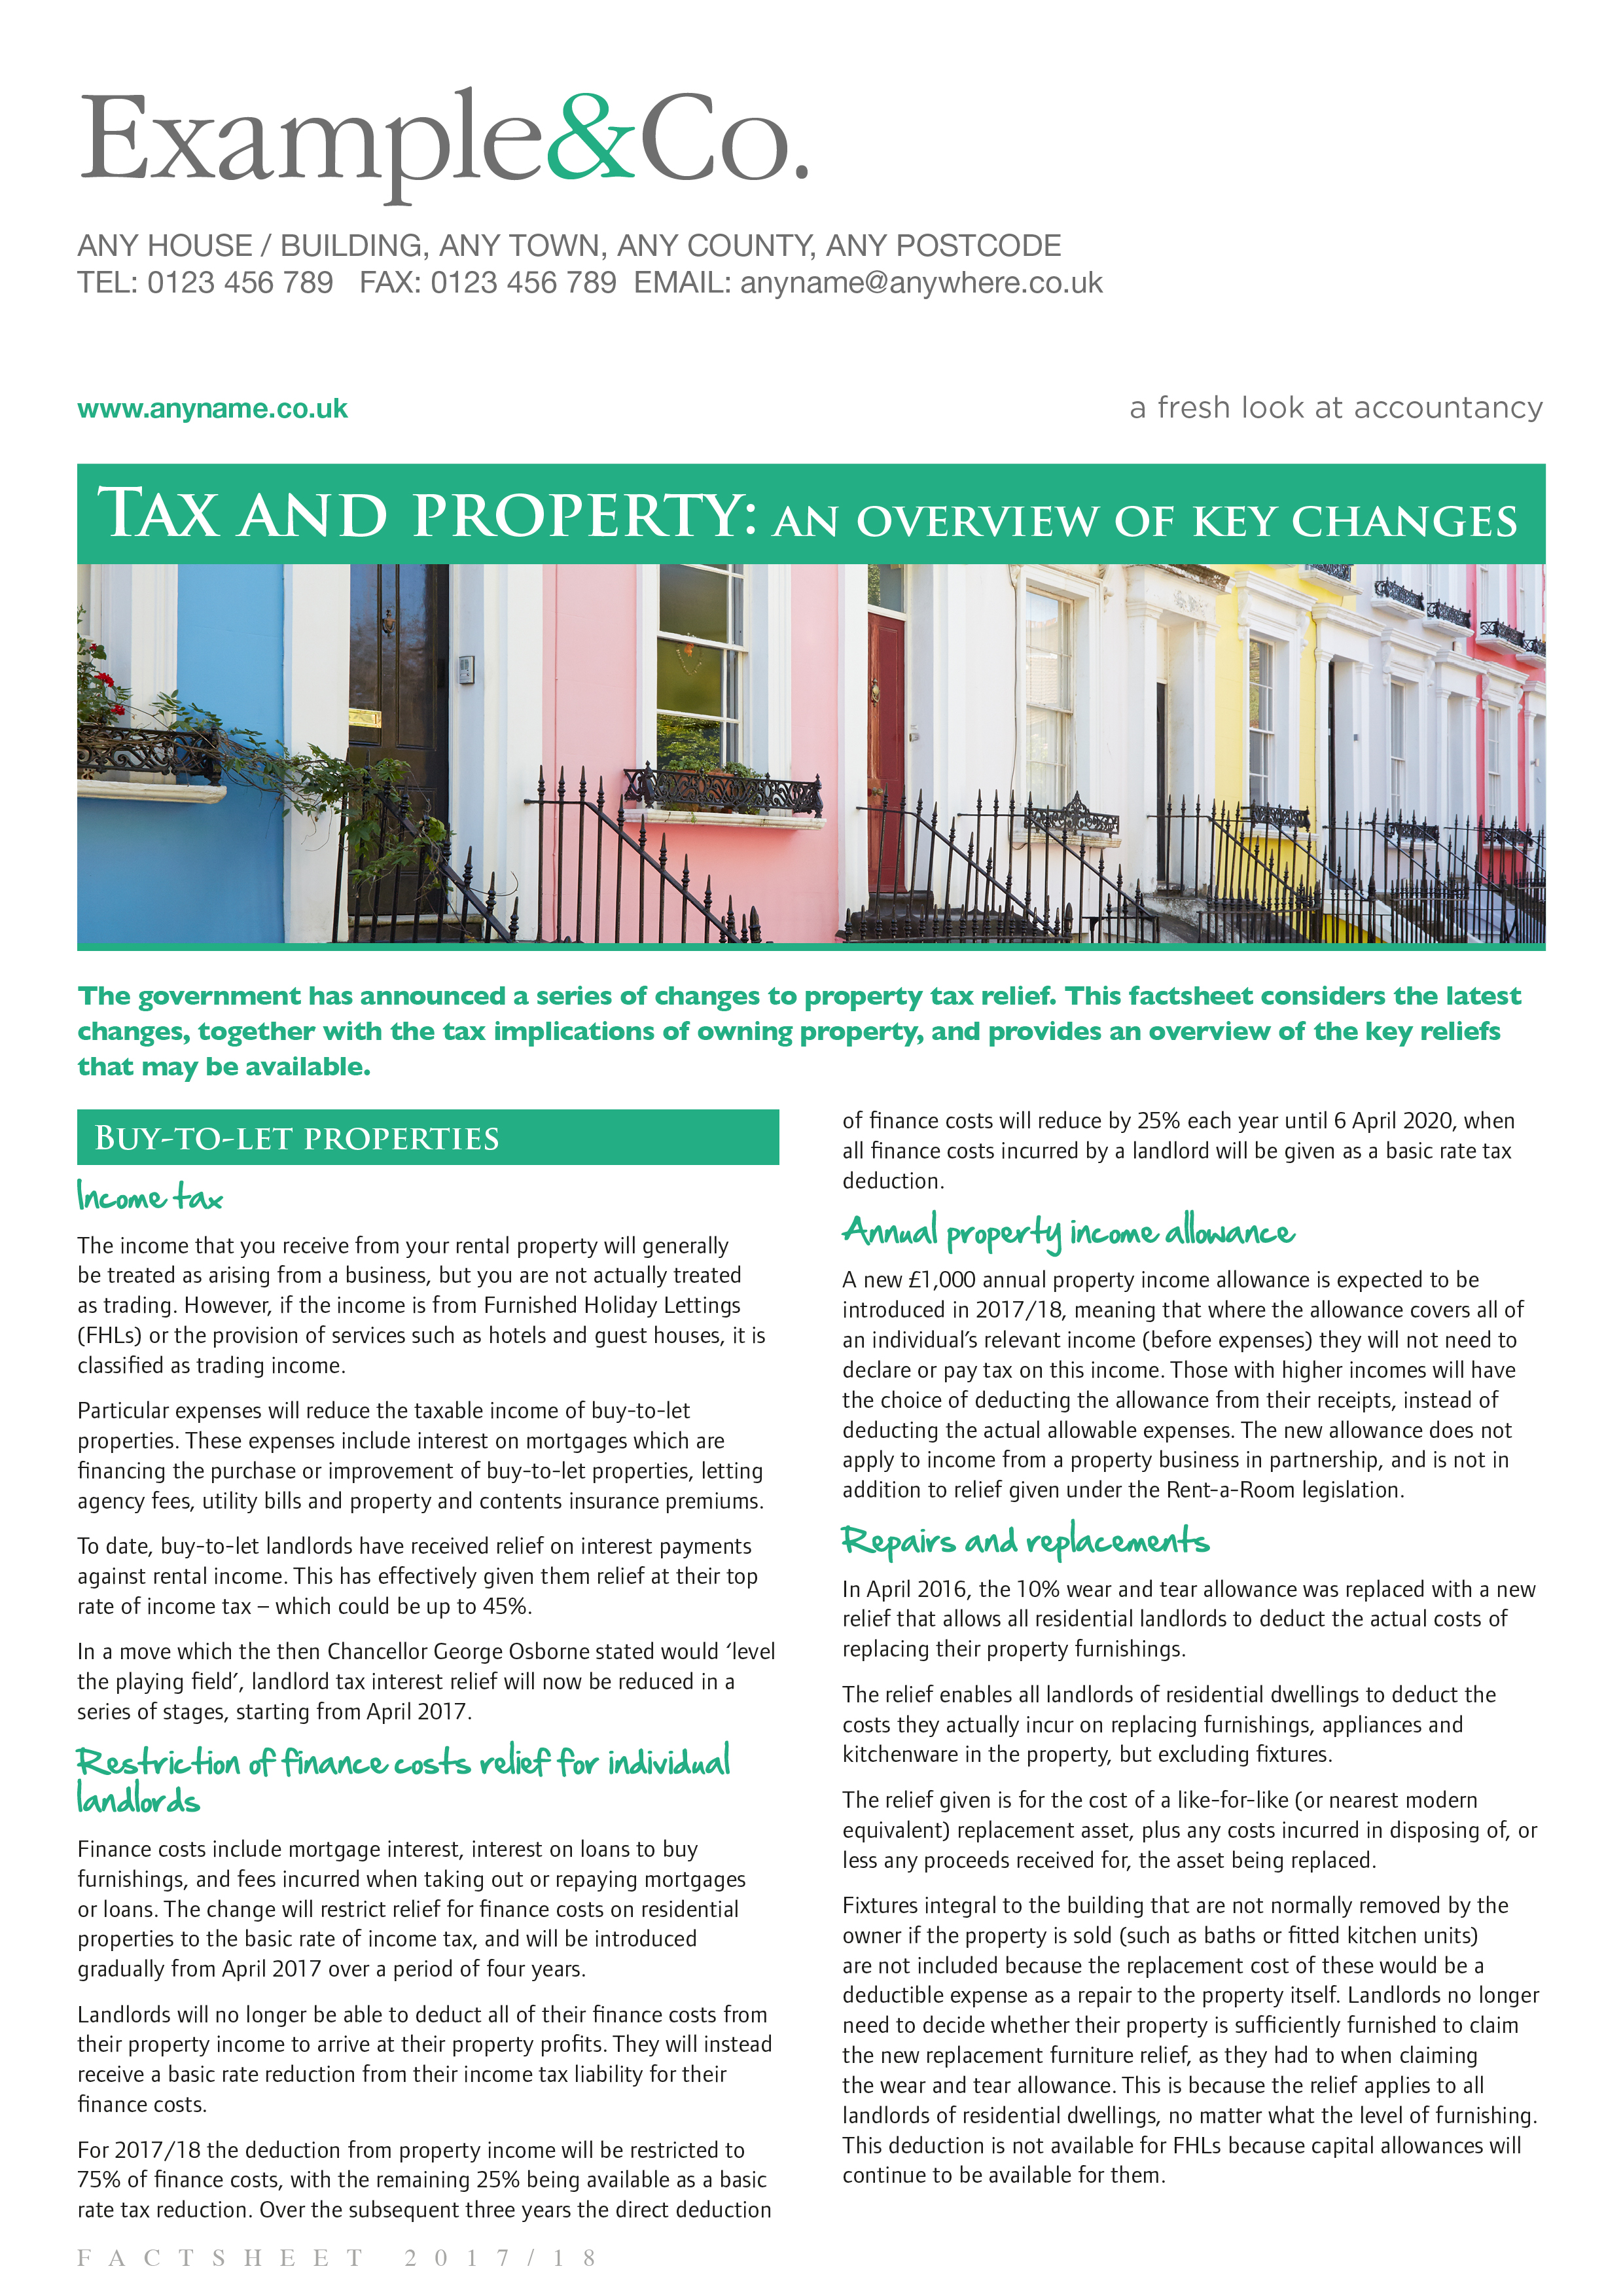 Tax and Property: an overview of key changes